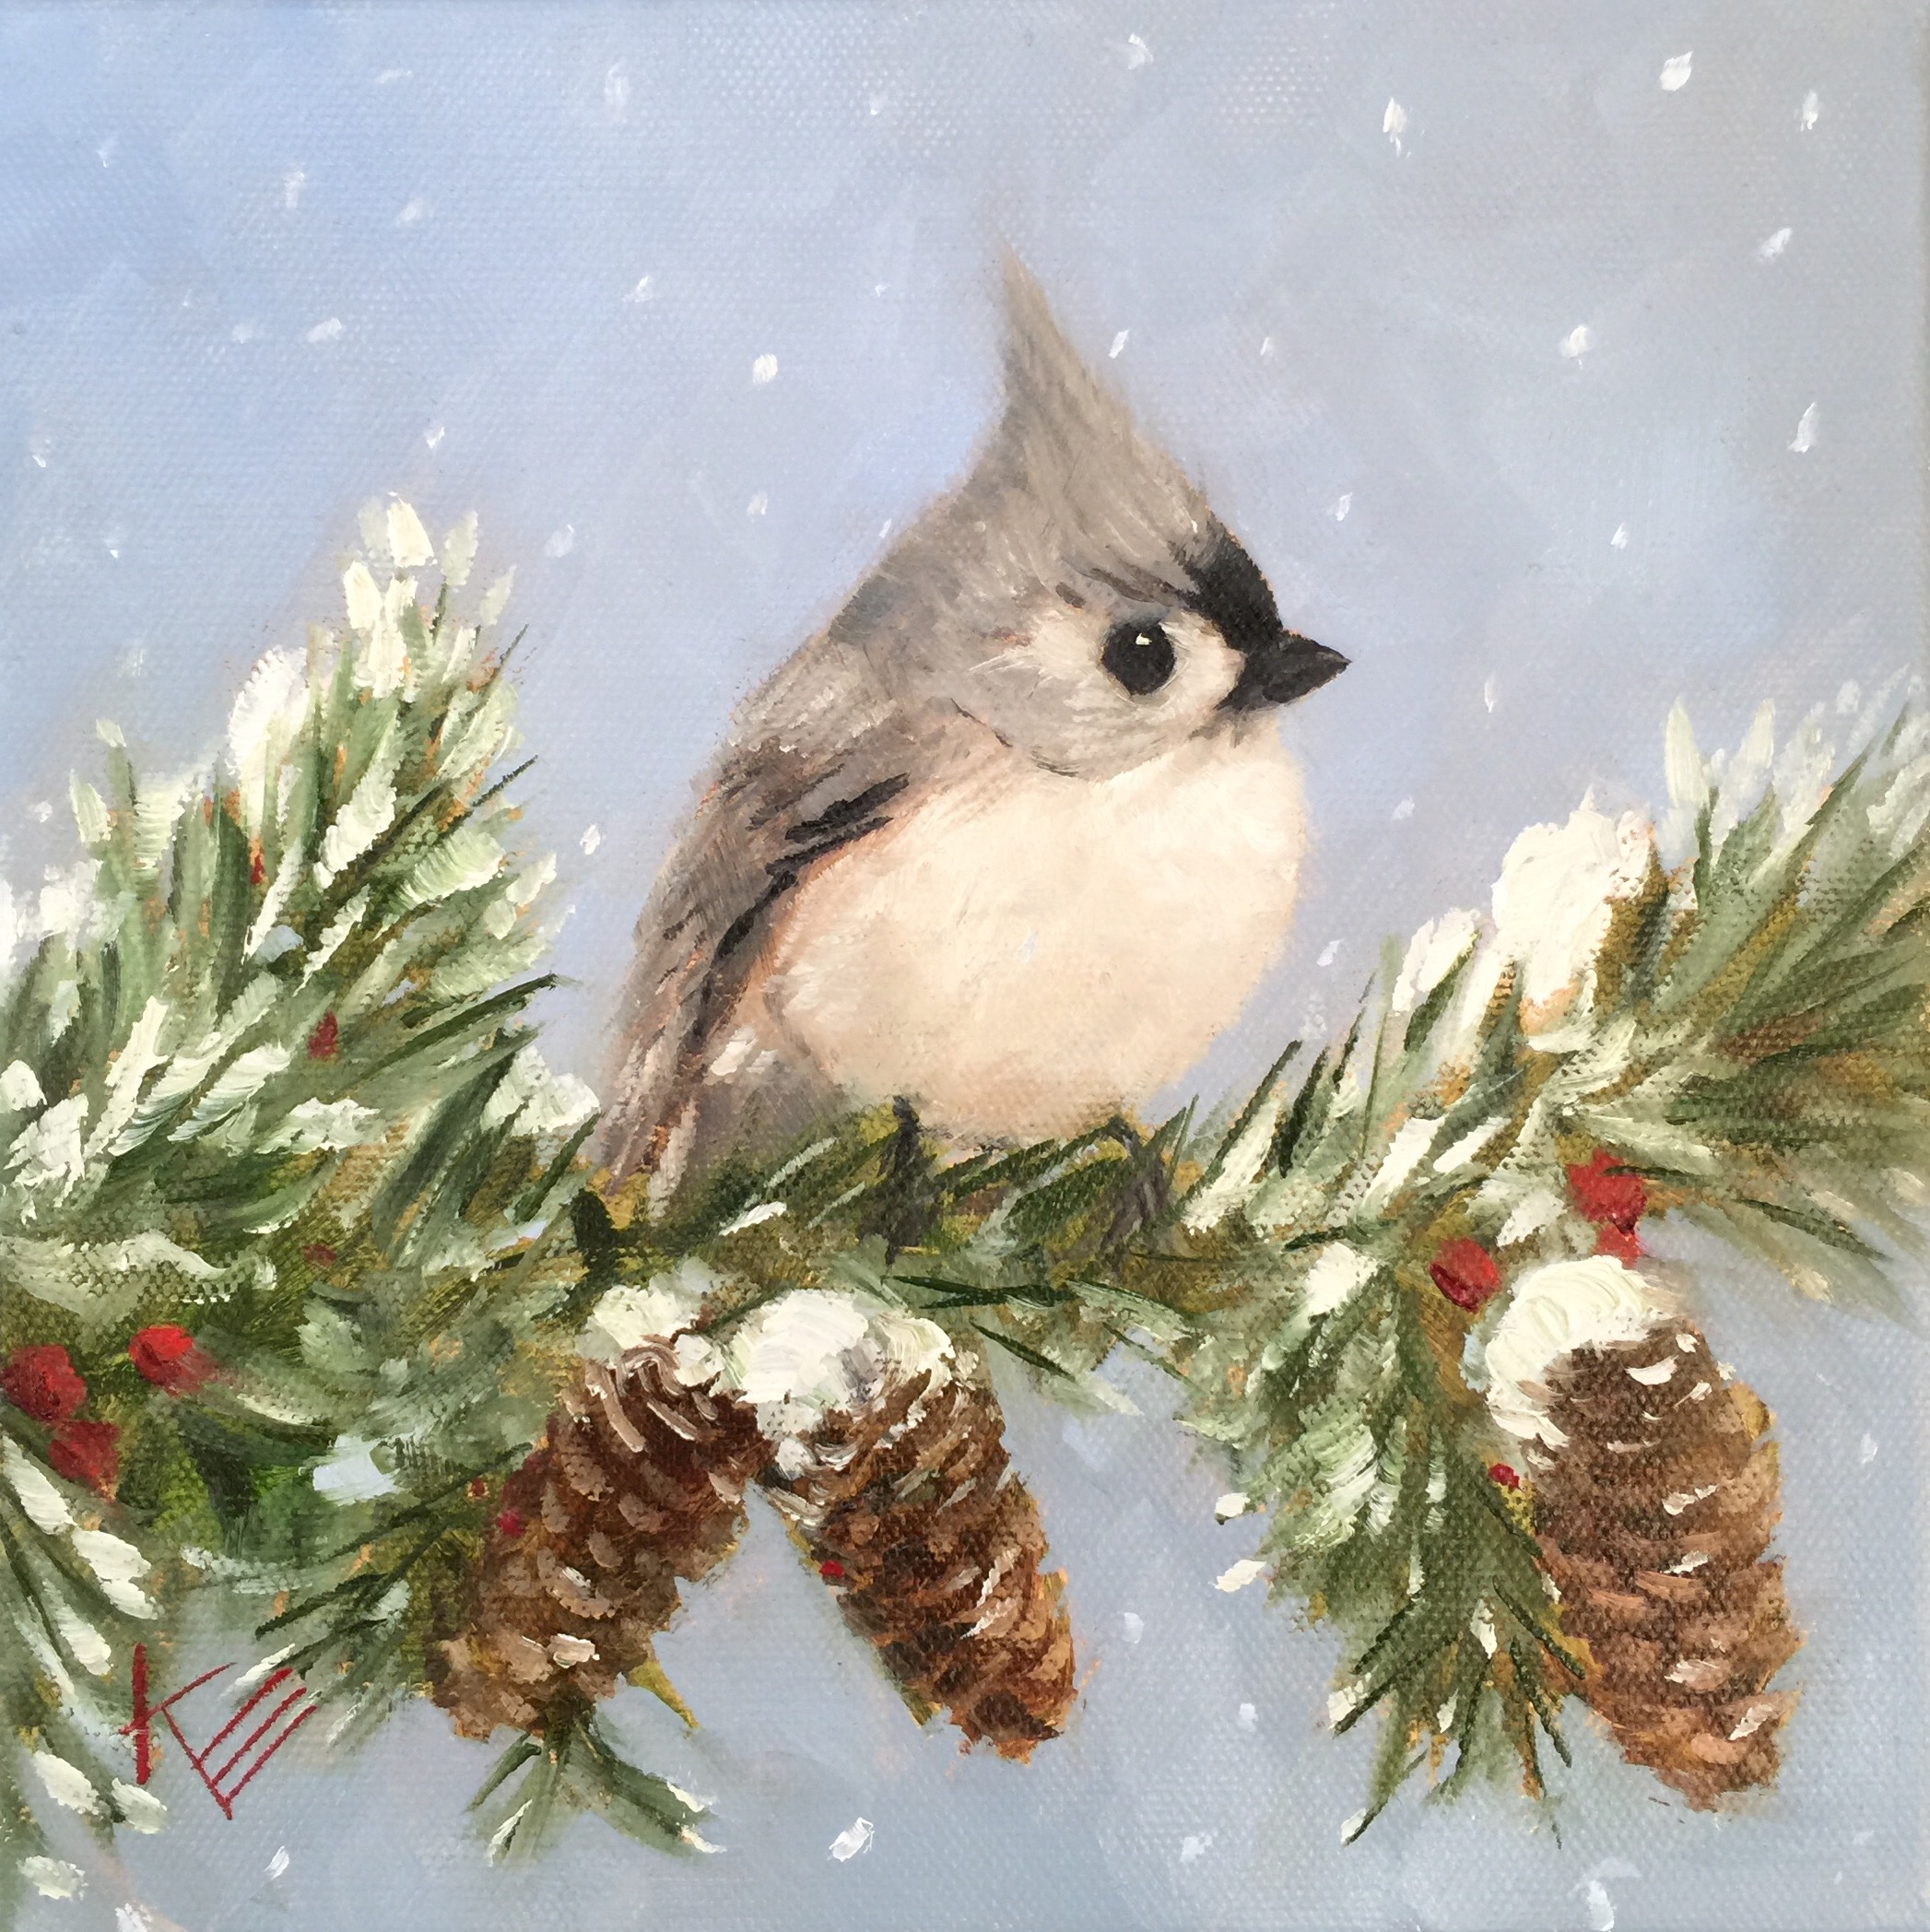 Christmas Snow Falling Wallpaper Scottsdale Artists School Painting Winter Birds One Day